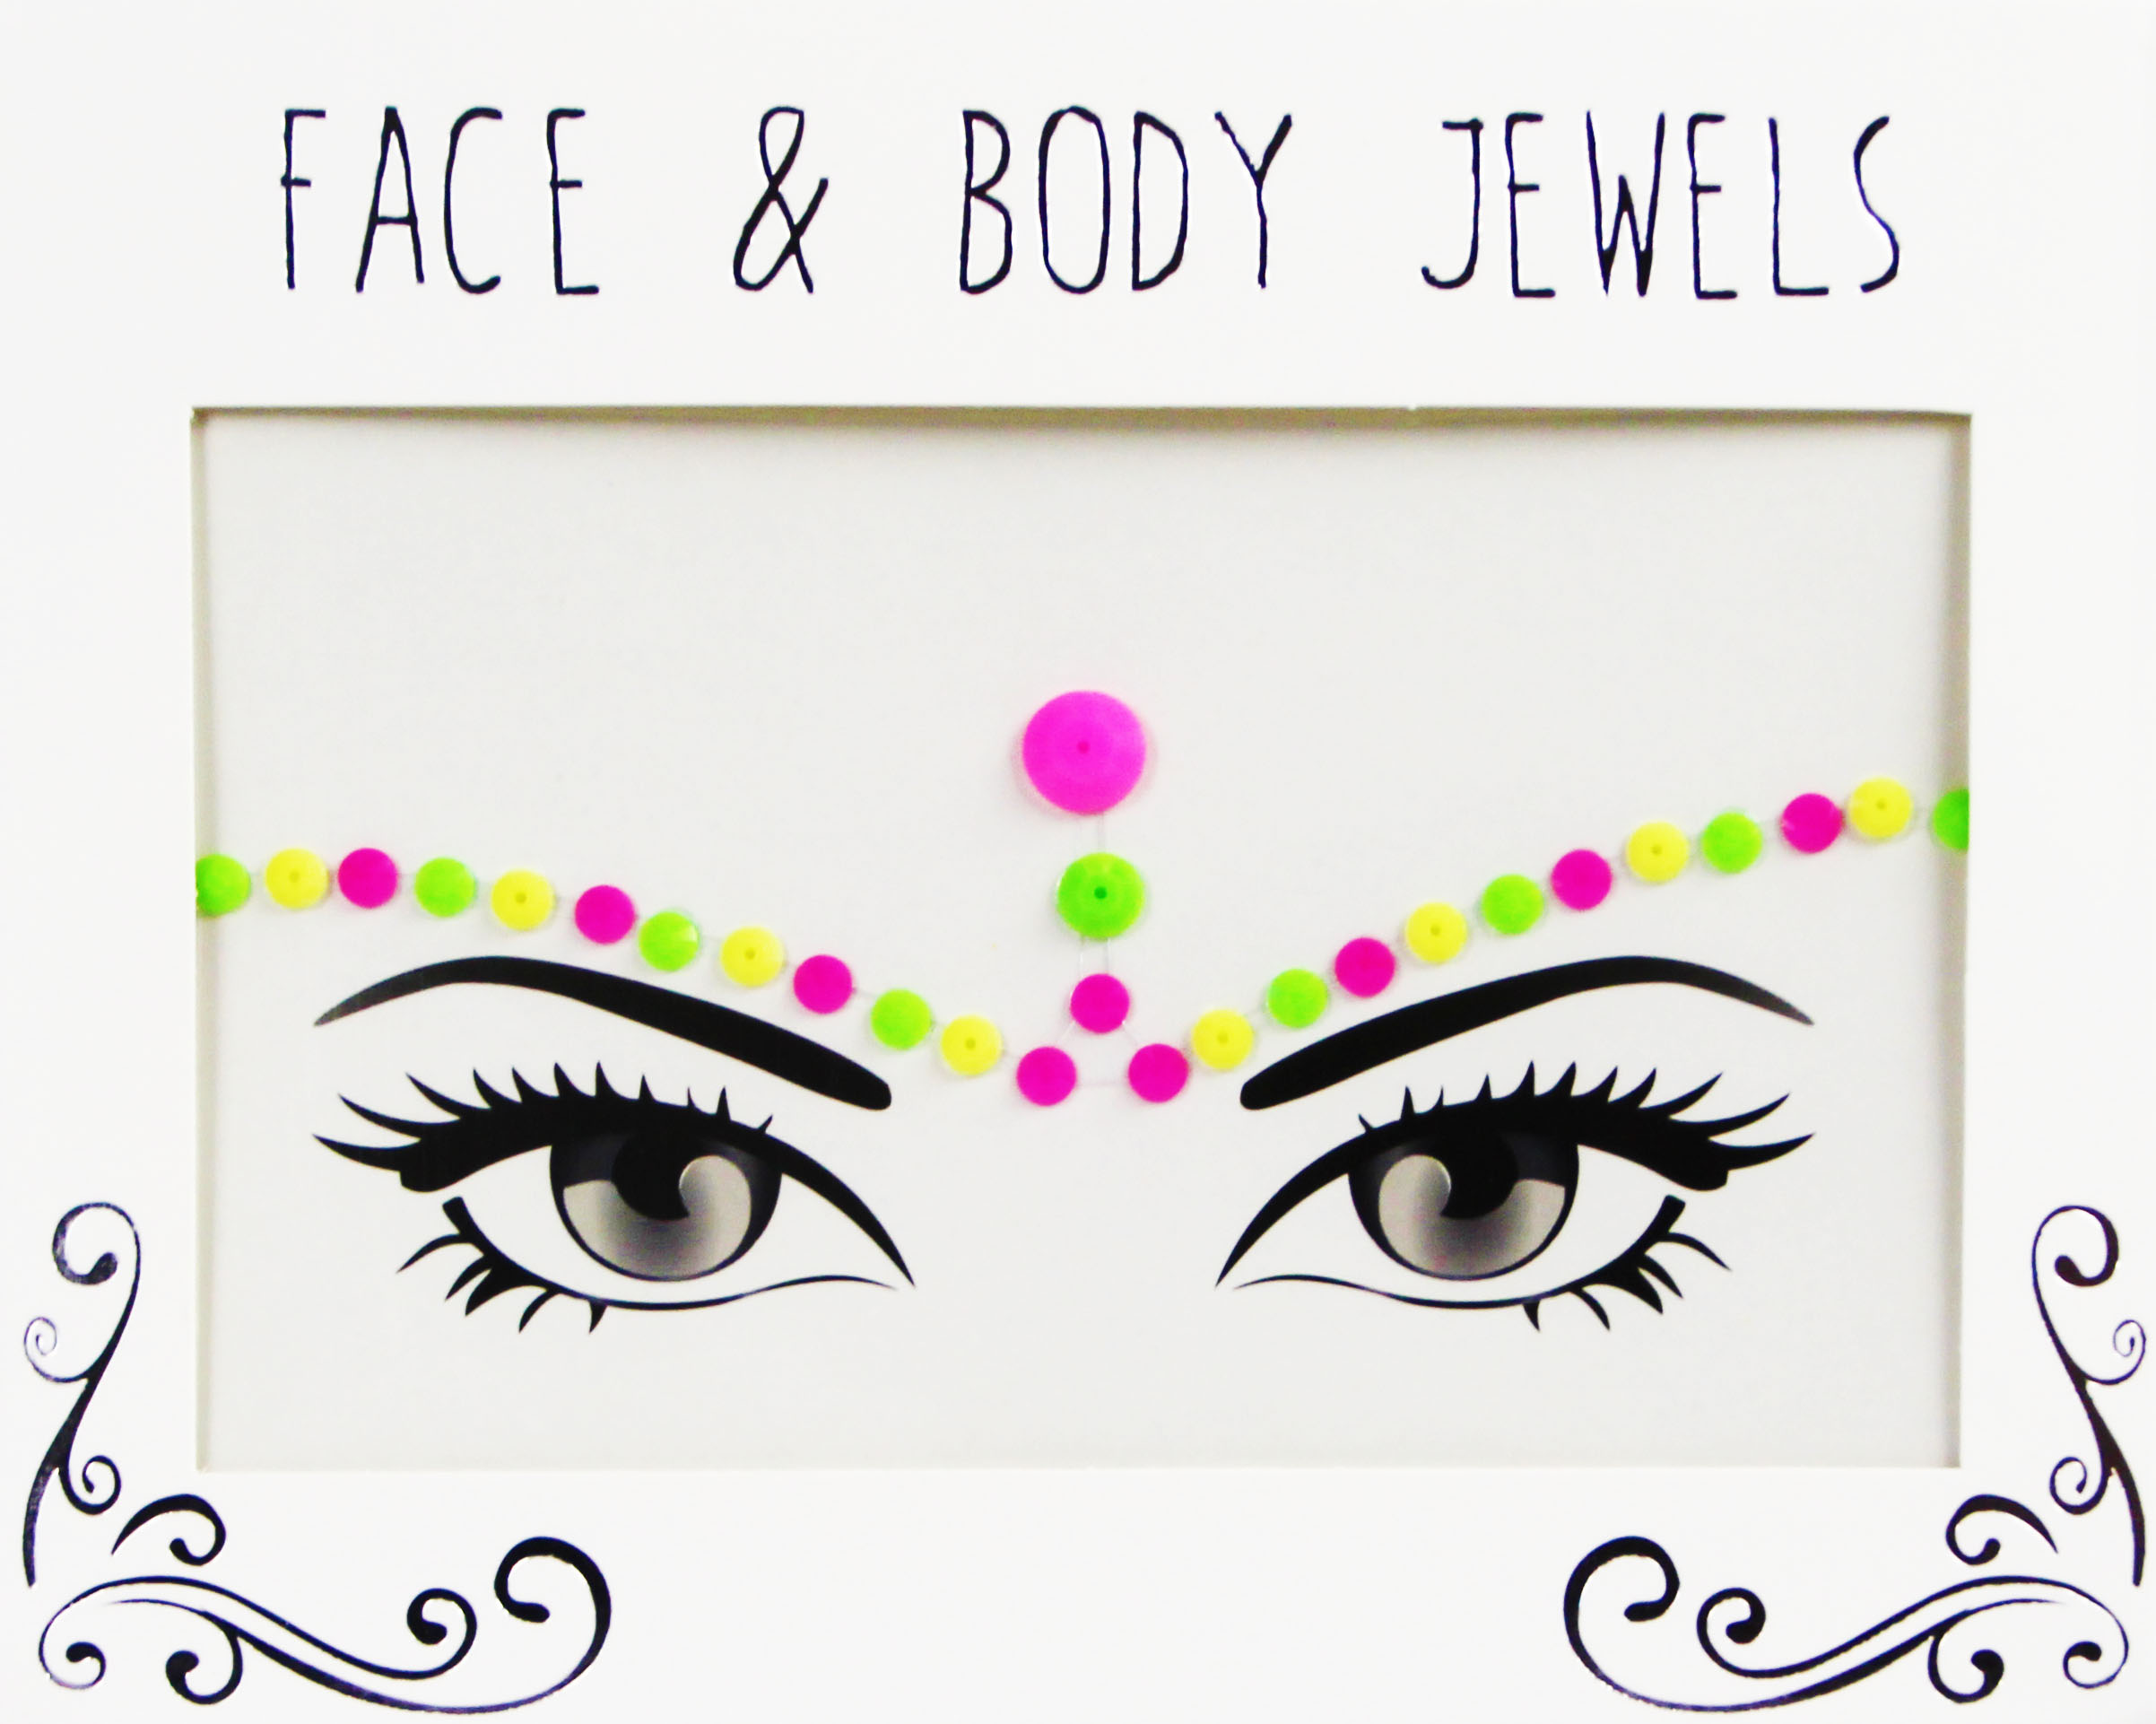 Face & Bodygems Neon Angel